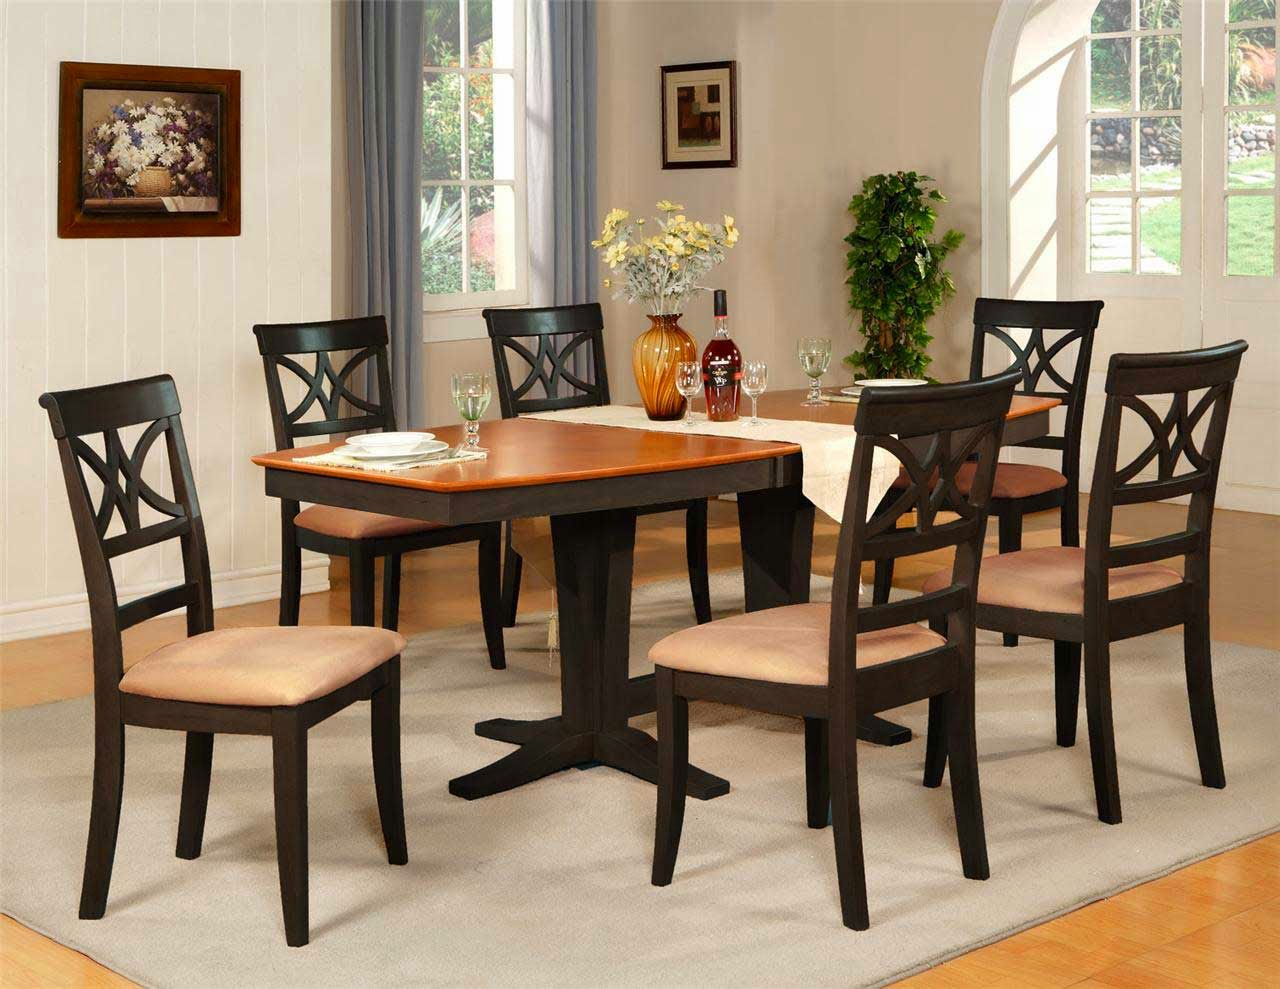 Dining room table centerpiece ideas for Dining room table ideas